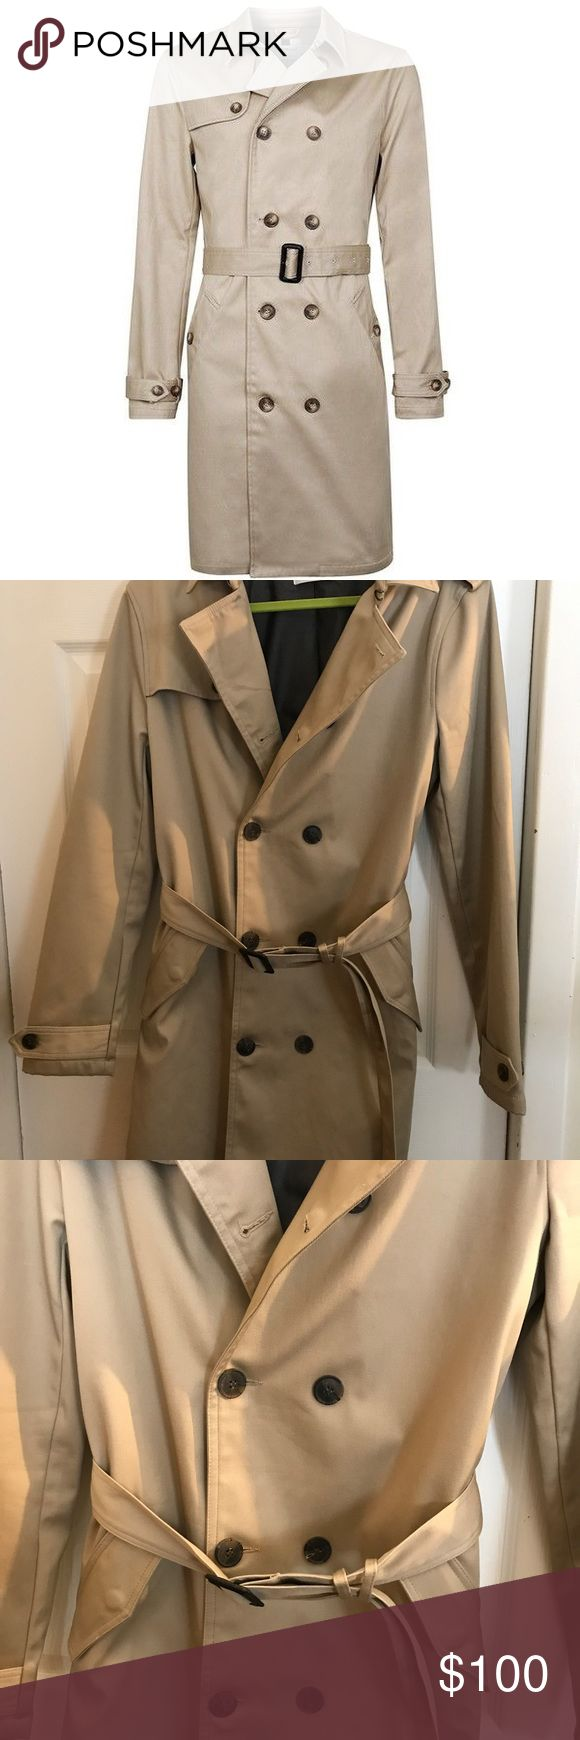 Top man mens trench coat So selling it all. Gorgeous trench coat in very good condition. Some small marks hard to see with the naked eye(small water marks that you would really need to look for to see on the sleeve). This is so classy for that guy that works in an office. No trades. No low offers. Topman Jackets & Coats Trench Coats